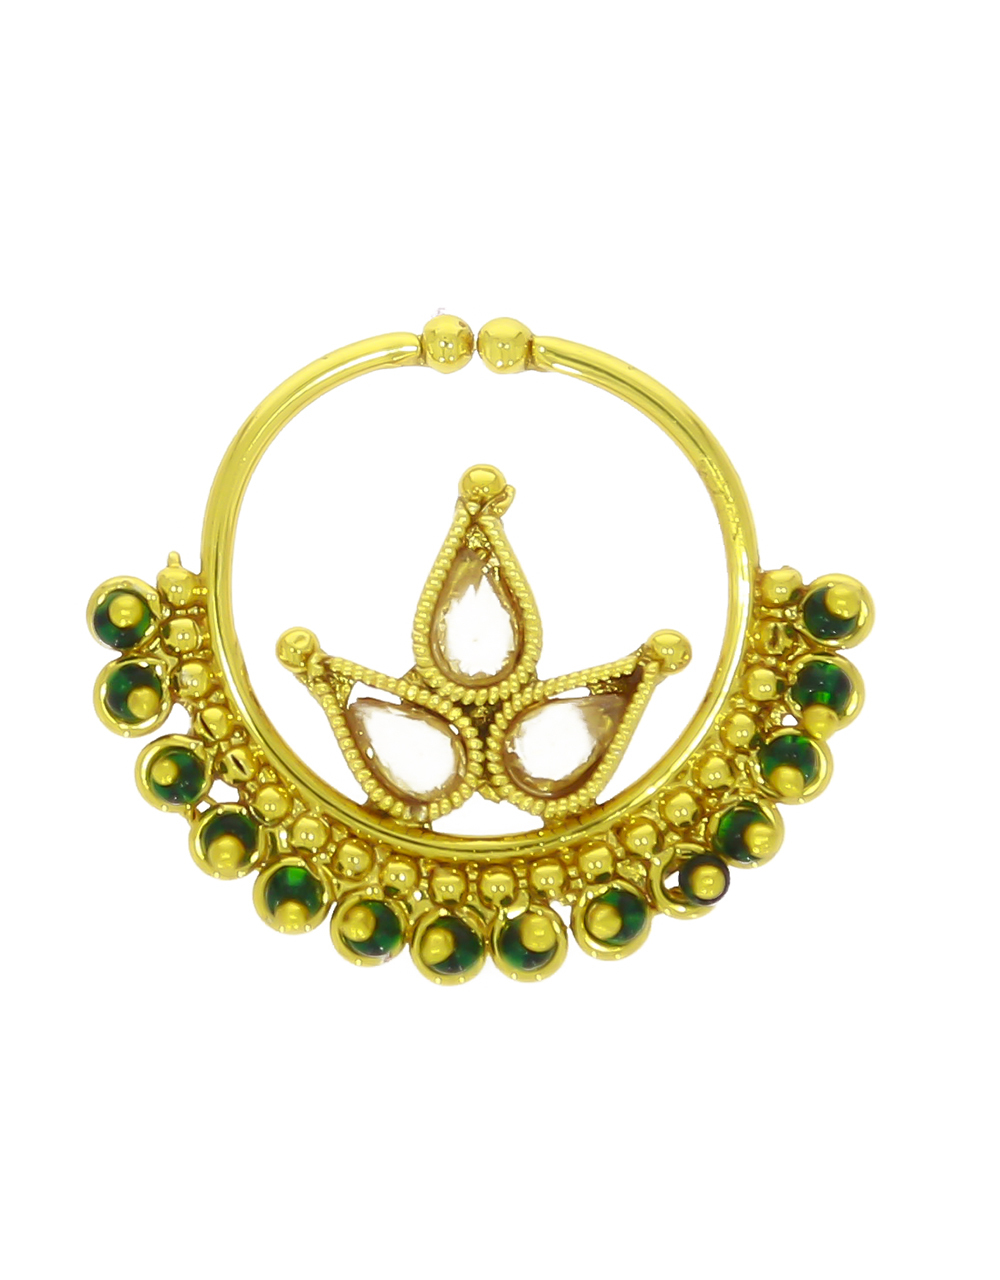 Gold Plated Designer Nose Ring  Styled with Sparkling Stones